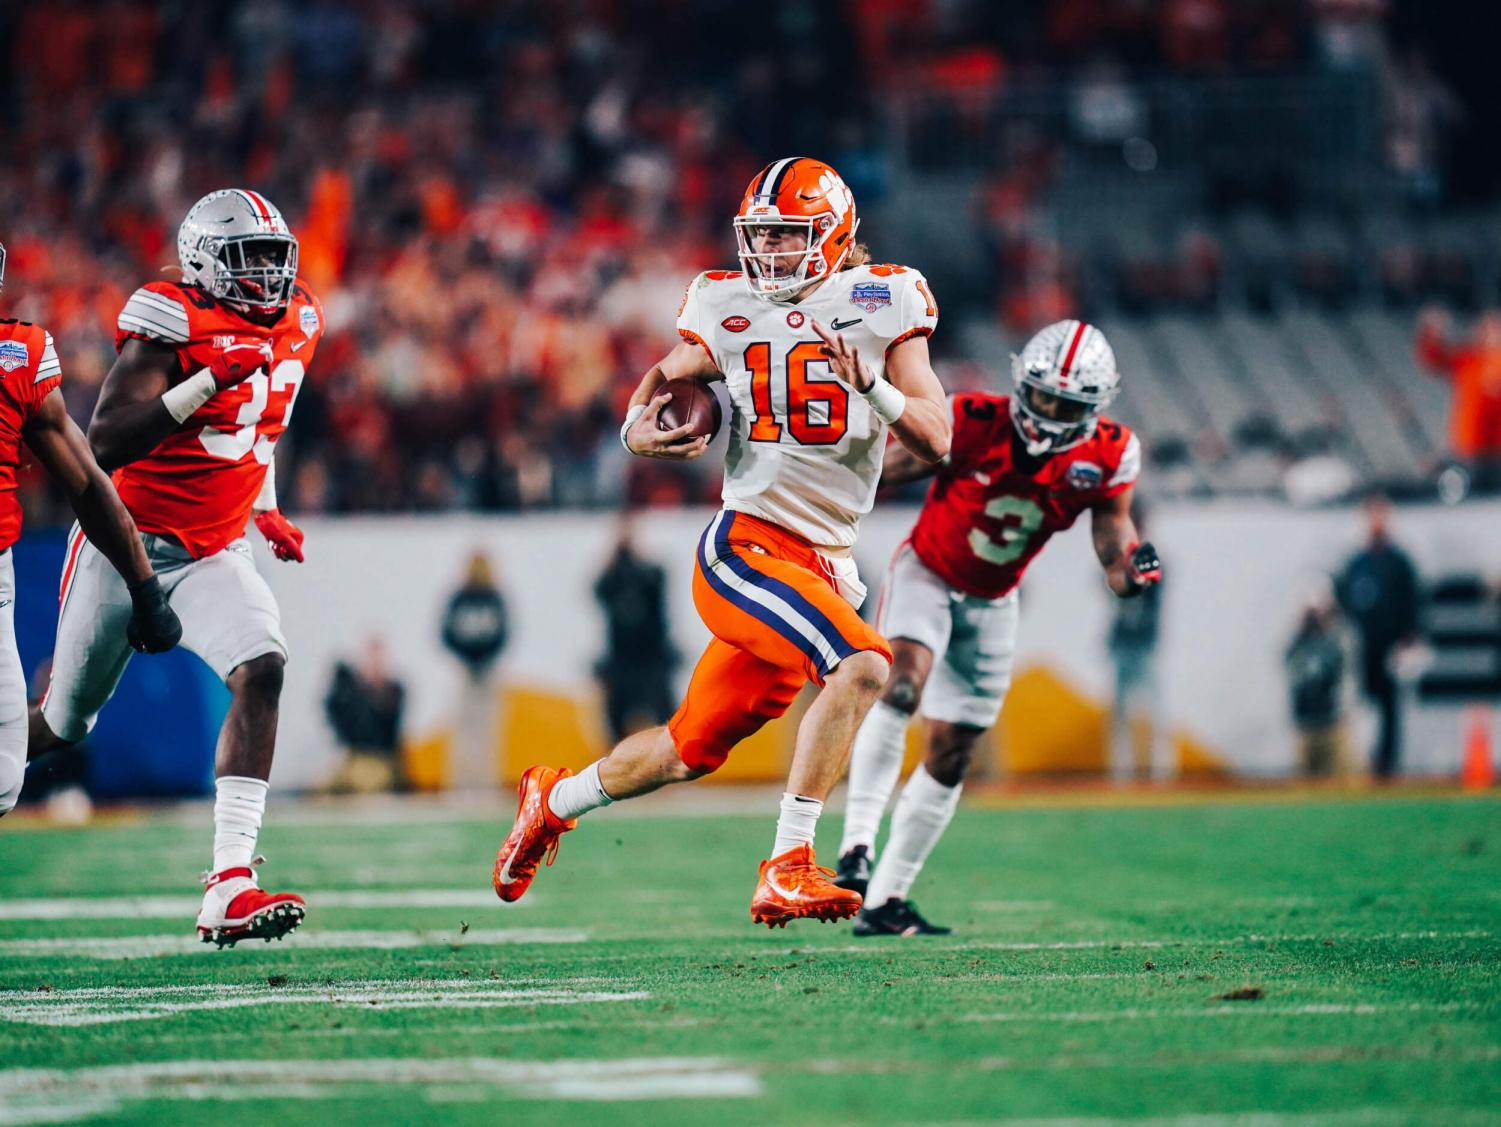 Trevor Lawrence will lead Clemson against LSU in the national championship game.